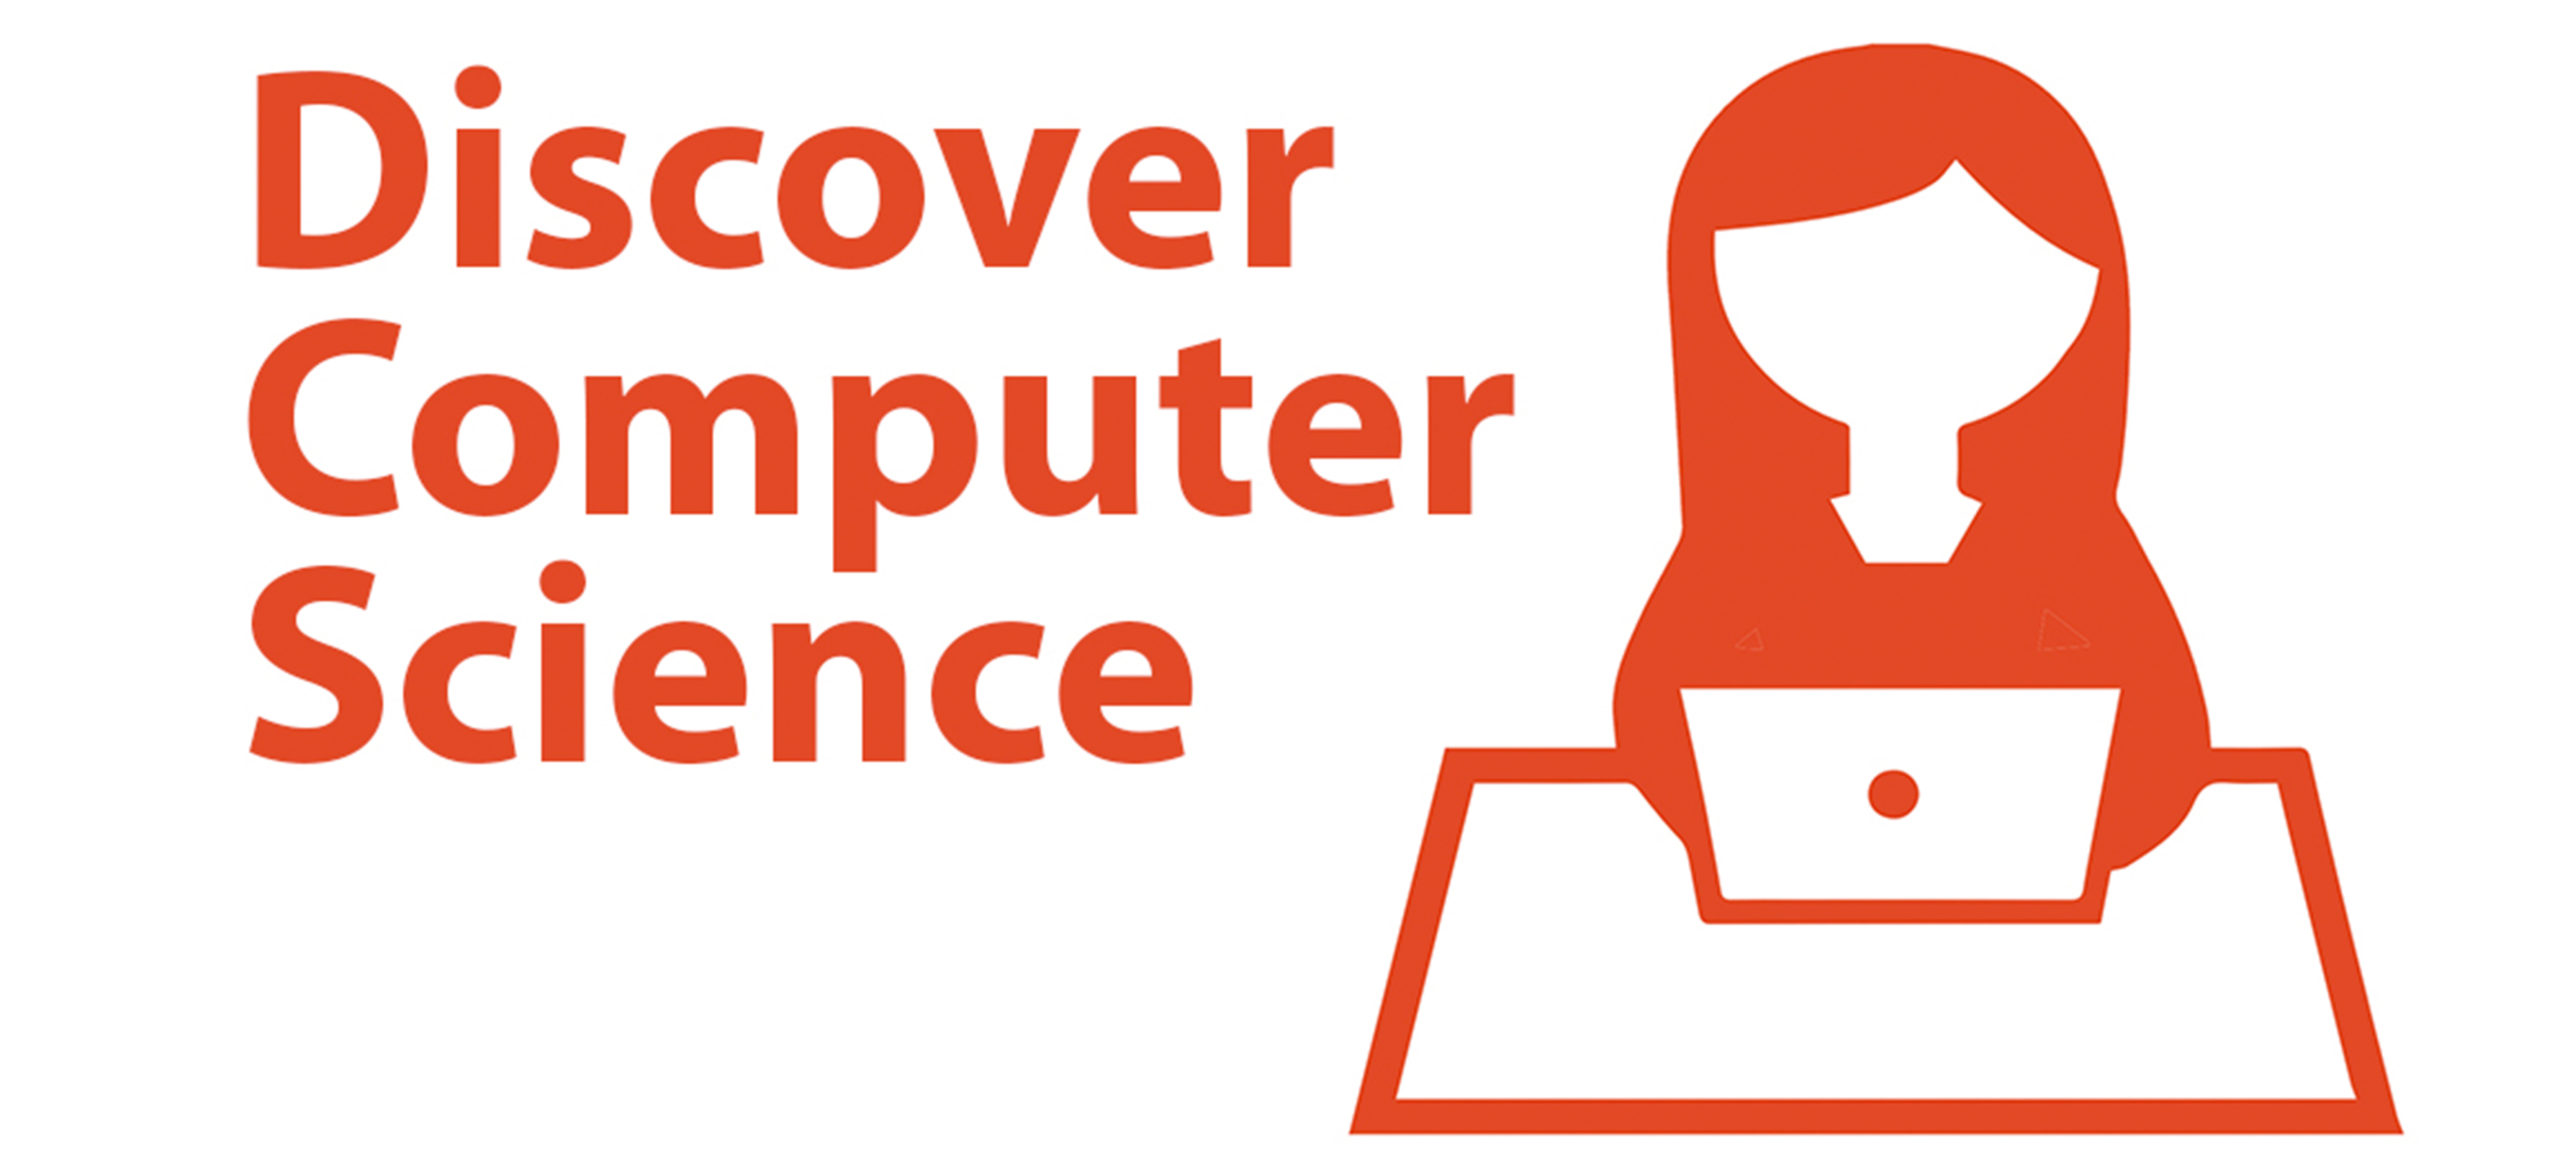 Discover Computer Science graphic